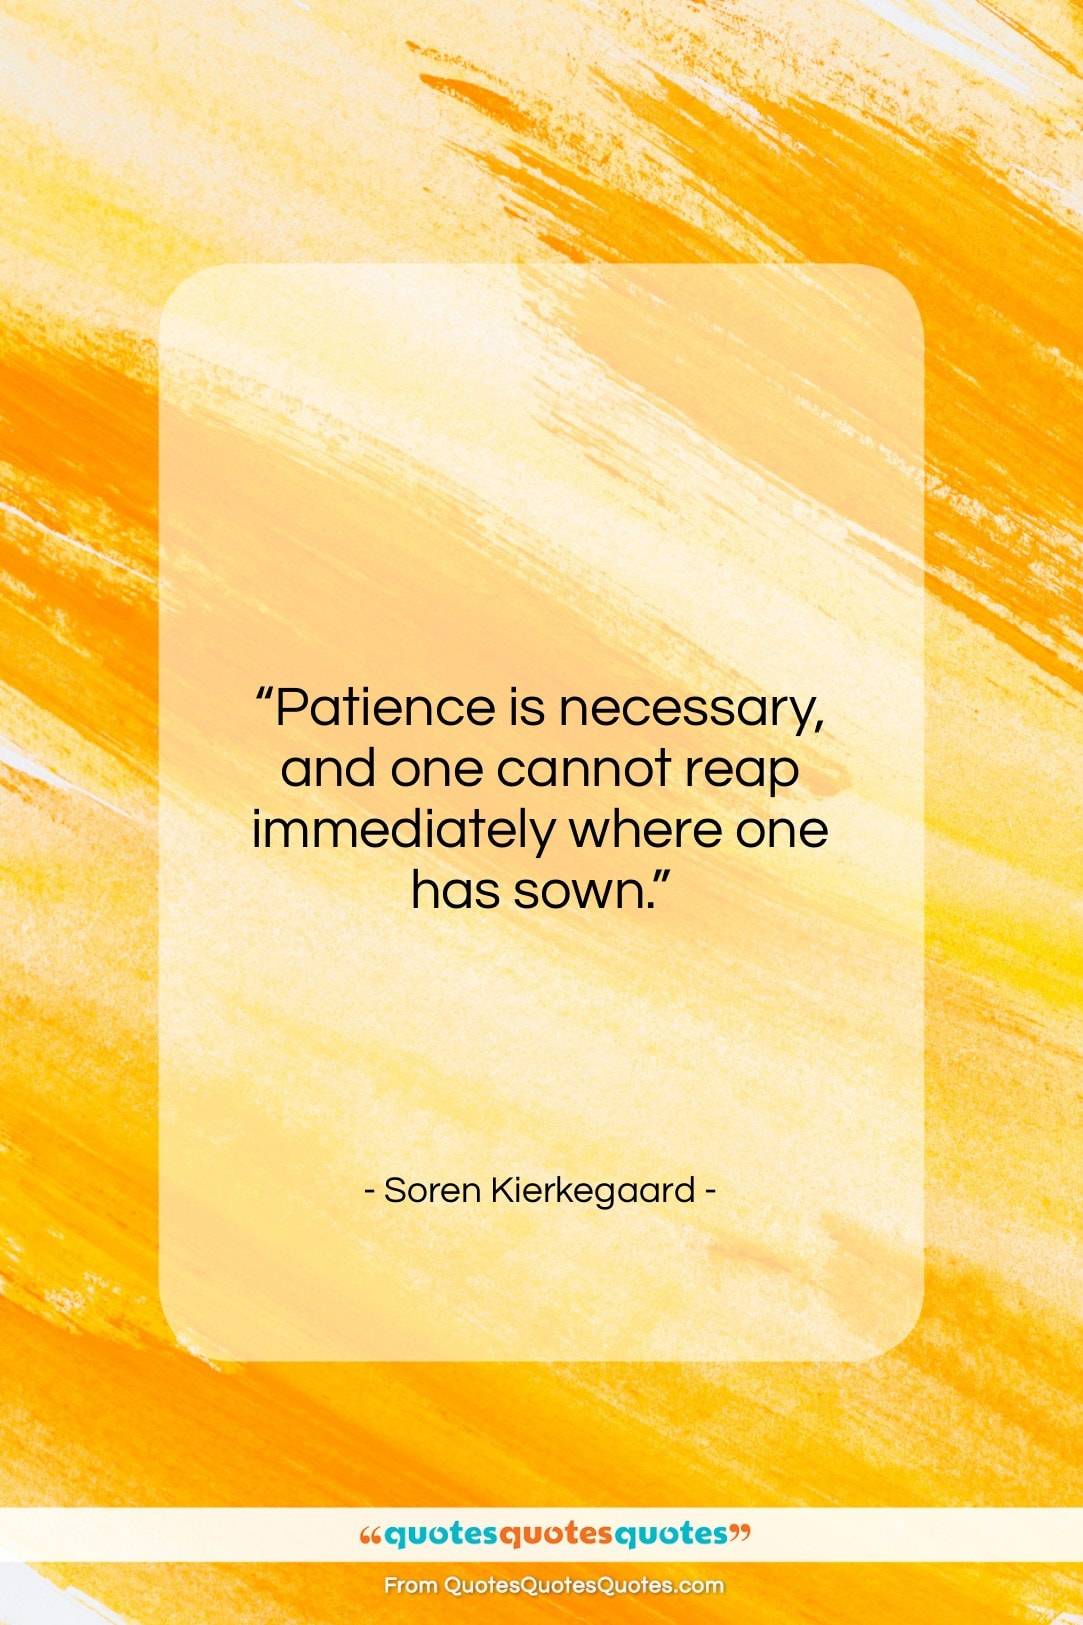 """Soren Kierkegaard quote: """"Patience is necessary, and one cannot reap…""""- at QuotesQuotesQuotes.com"""